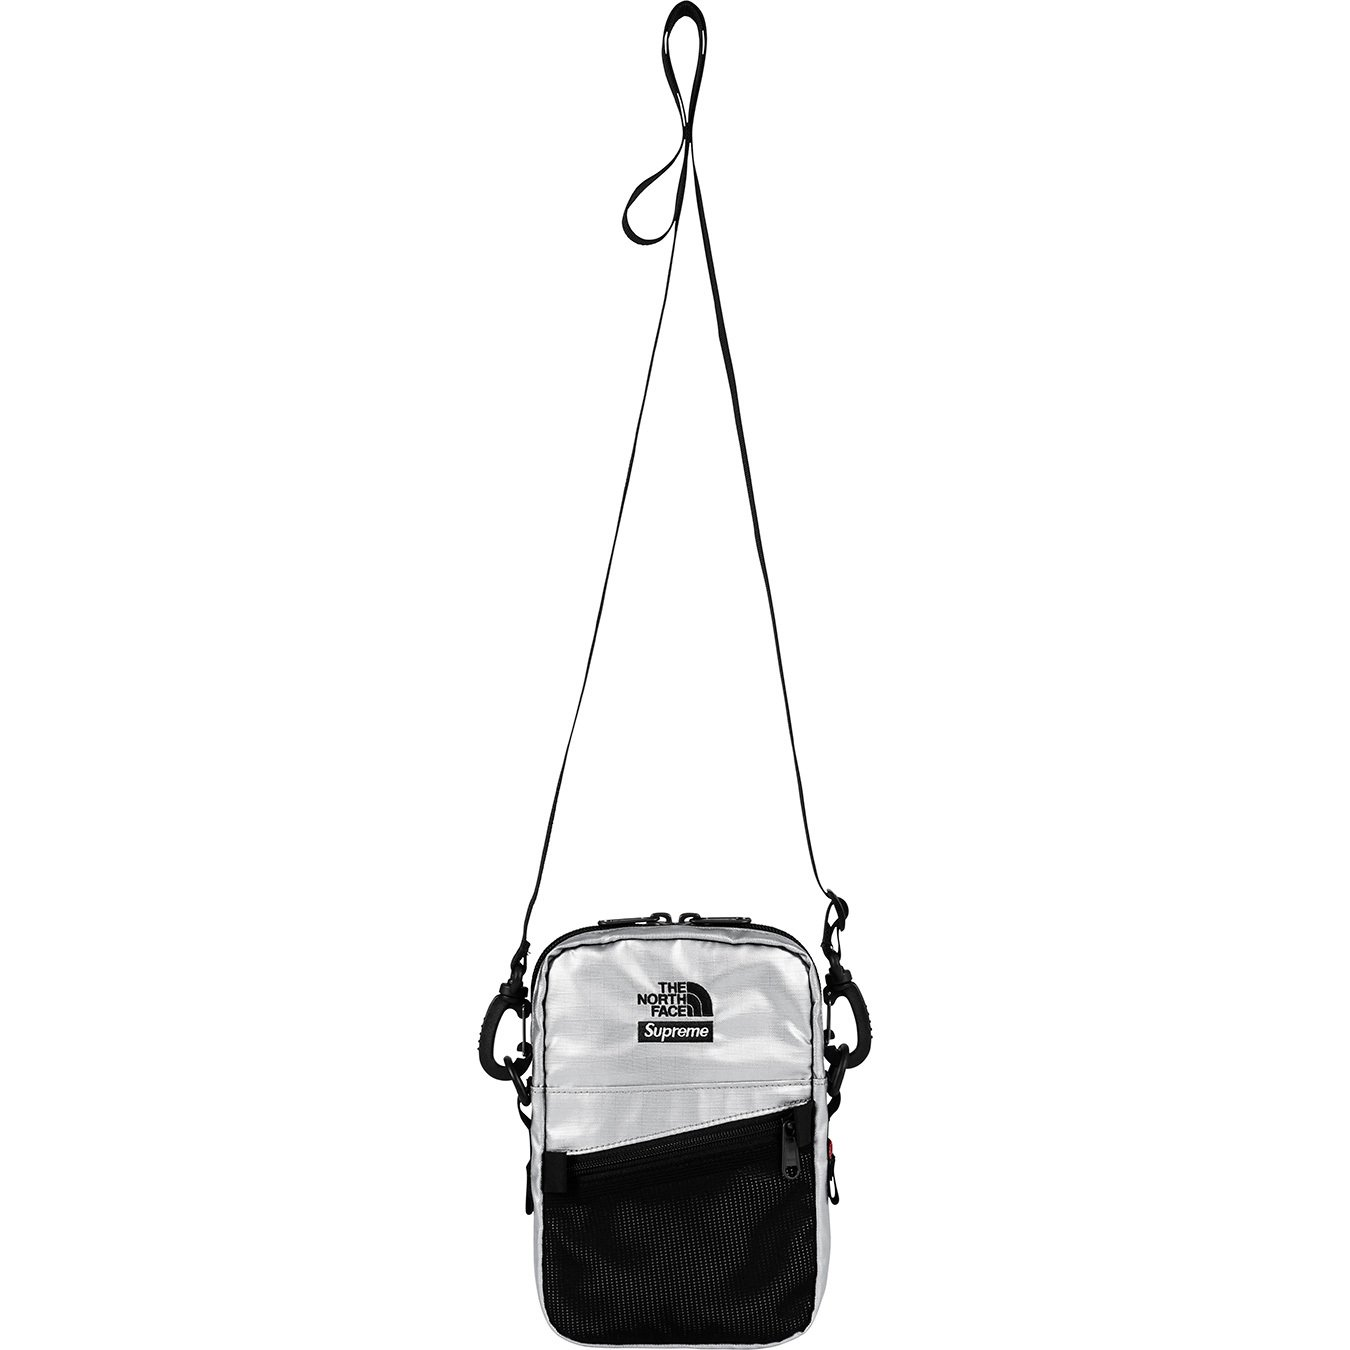 supreme-the-north-face-18ss-release-week7-20180407-metallic-shoulder-bag